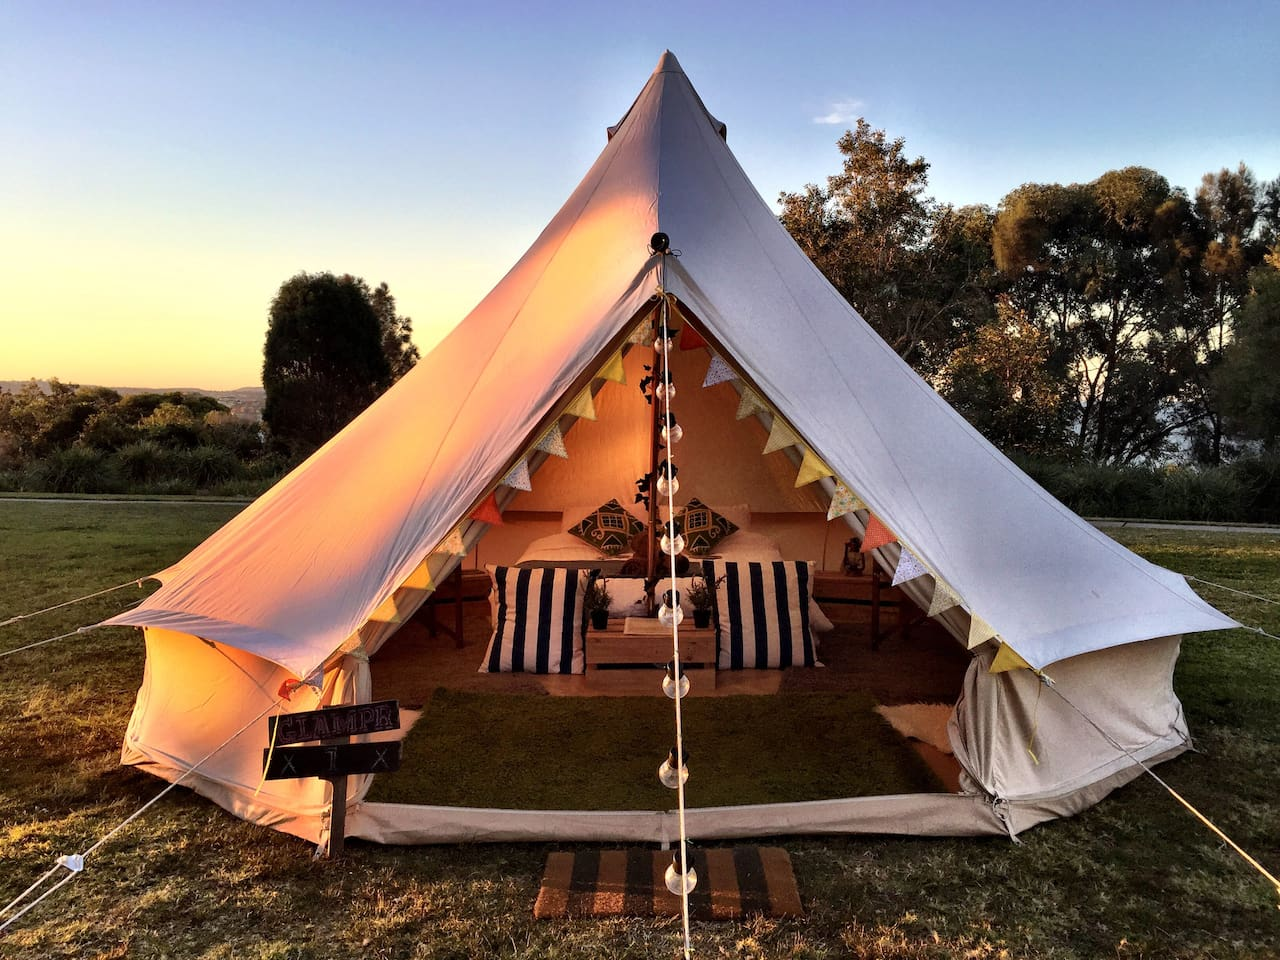 Step inside your glamping wonderland!